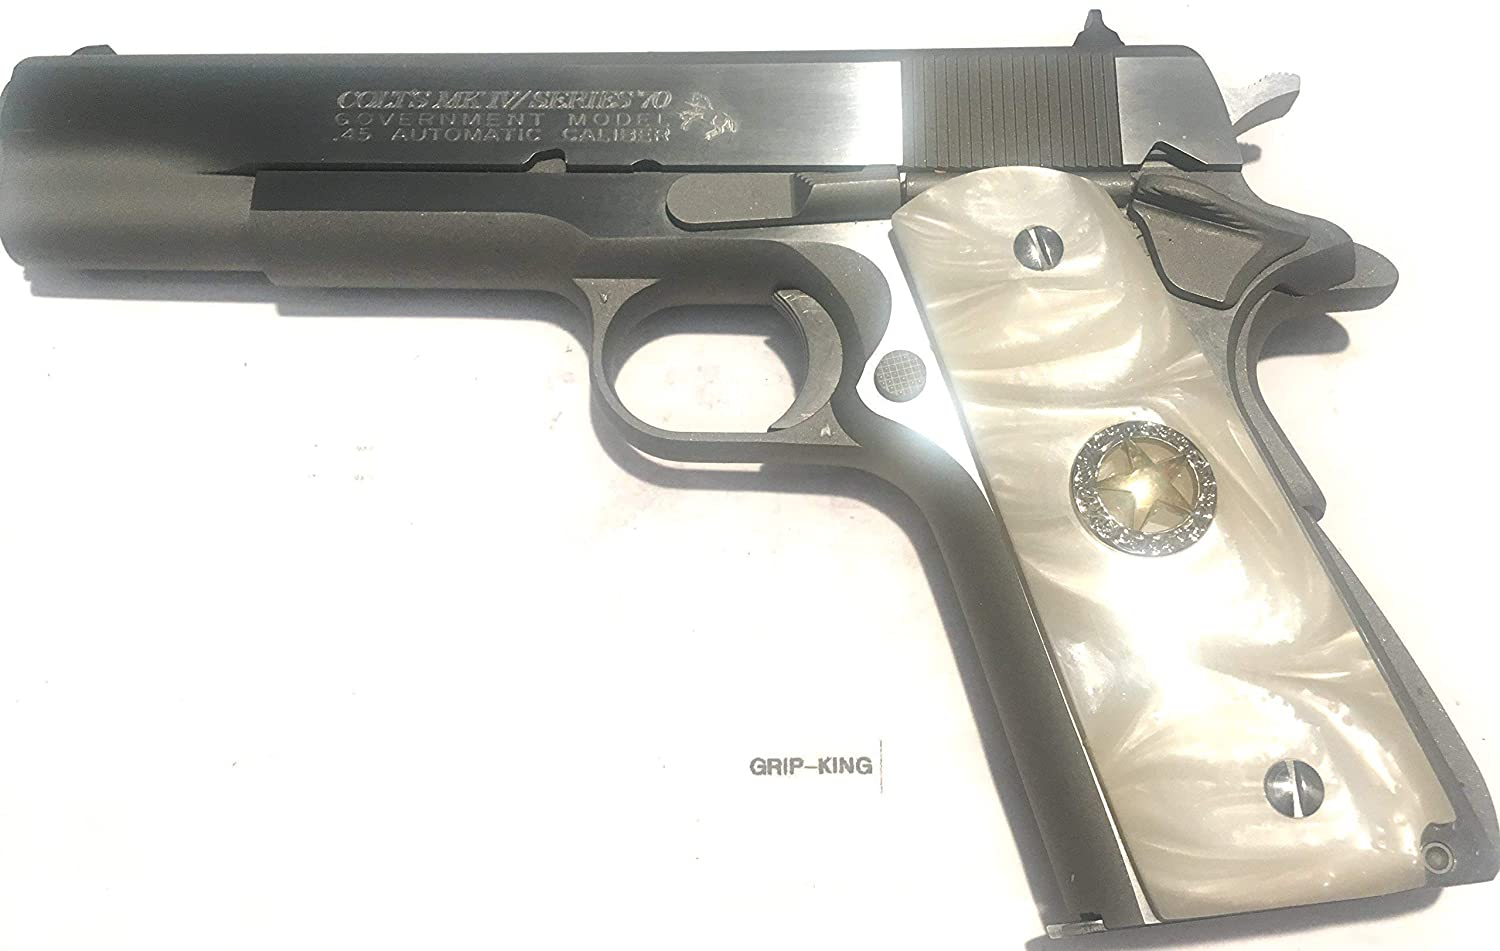 1911 GRIPS,FITS COLT,RUGER,KIMBER,SIG,SPRINGFIELD,REMINGTON S & W,WILSON,ITHACA,ACE FULL SIZE